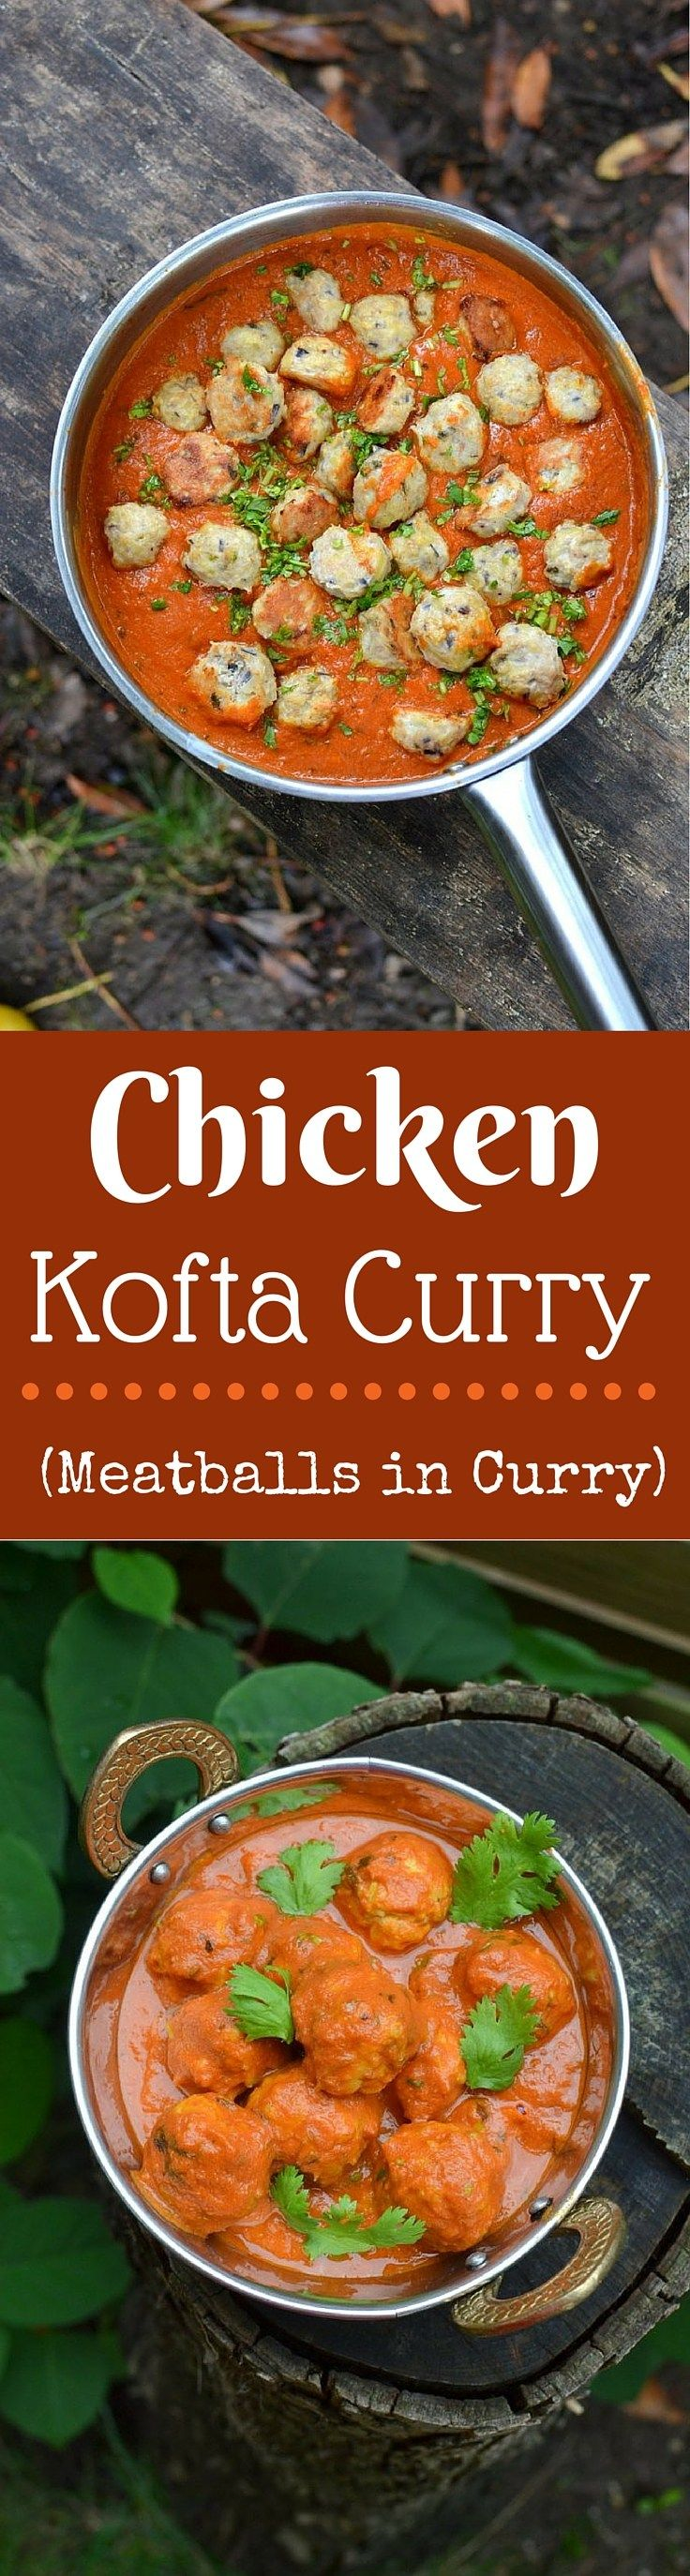 Murgh Kofta Curry: This is one perfectly indulgent curry of Succulent Chicken Meatballs in a delicate tomato and yogurt based gravy! (Chicken Kofta Curry)